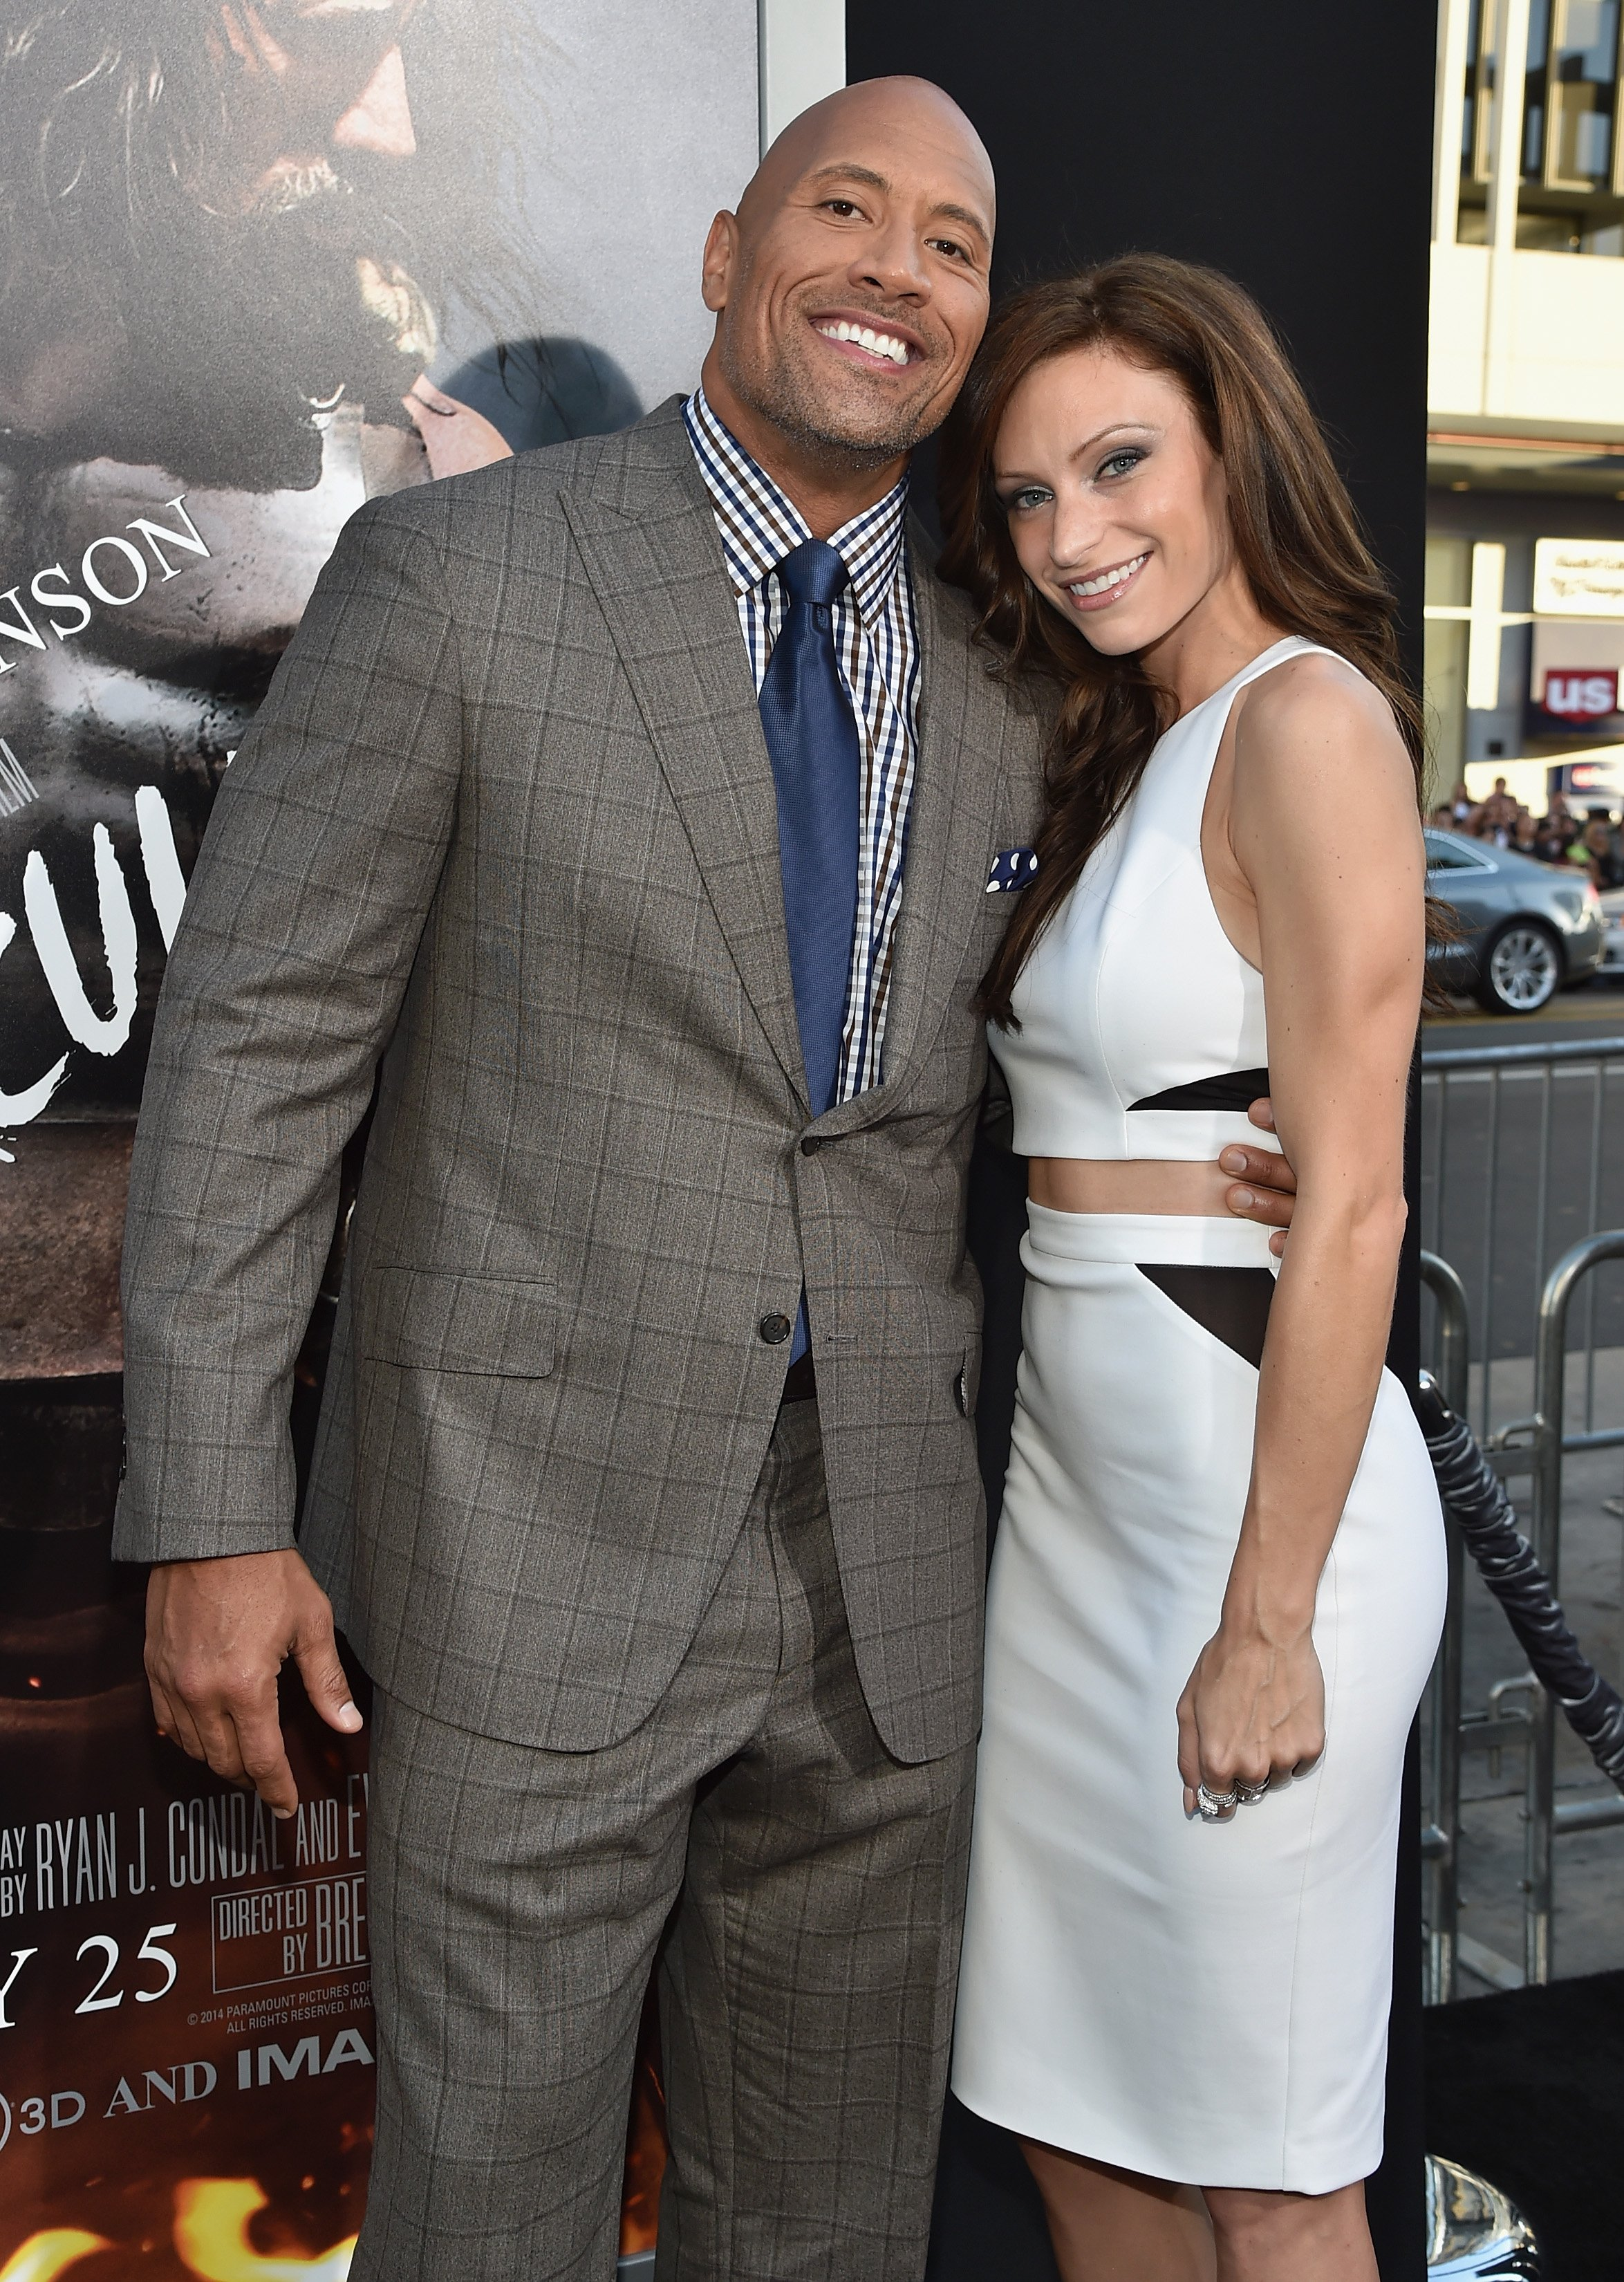 """Dwayne Johnson and Lauren Hashian attend the premiere of """"Hercules"""" in Hollywood, California on July 23, 2014   Photo: Getty Images"""